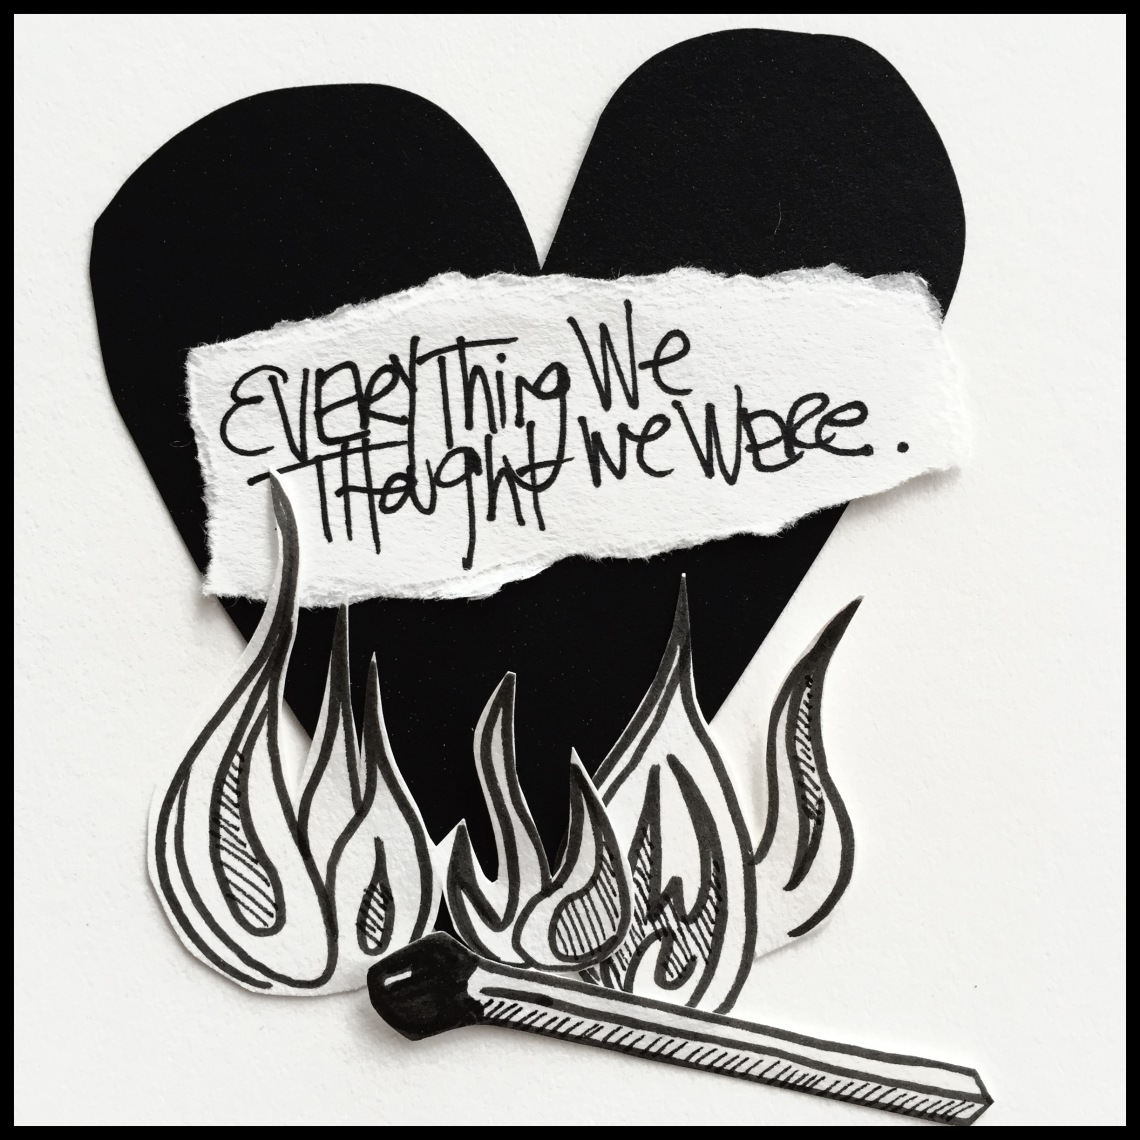 "This is a piece of art with a white background and a black heart in the foreground. The heart is covered by words that read, ""Everything we thought we were."" There is a cartoon-like black and white flame at the bottom of the heart with a hand-drawn match. This is by Danette Relic."